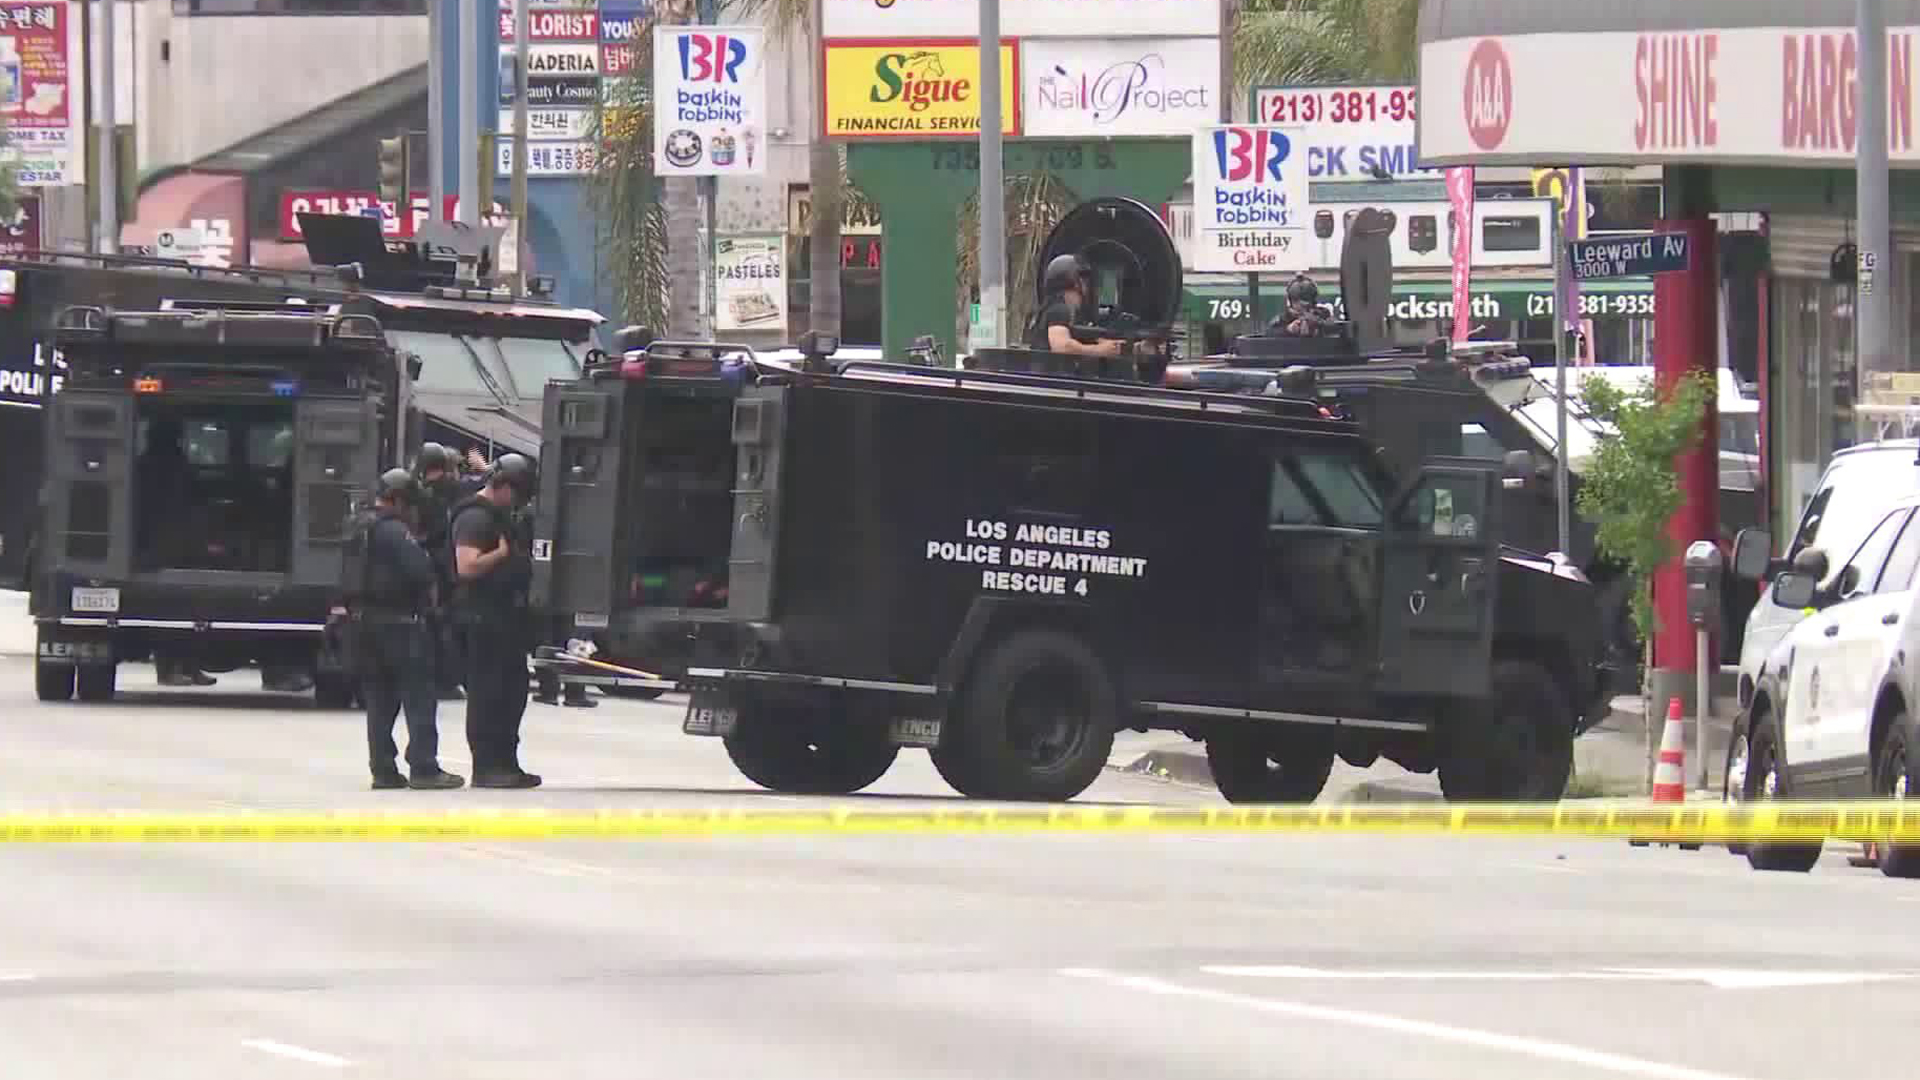 Police surround A & A Shine Bargain in Koreatown on April 30, 2019. (Credit: KTLA)